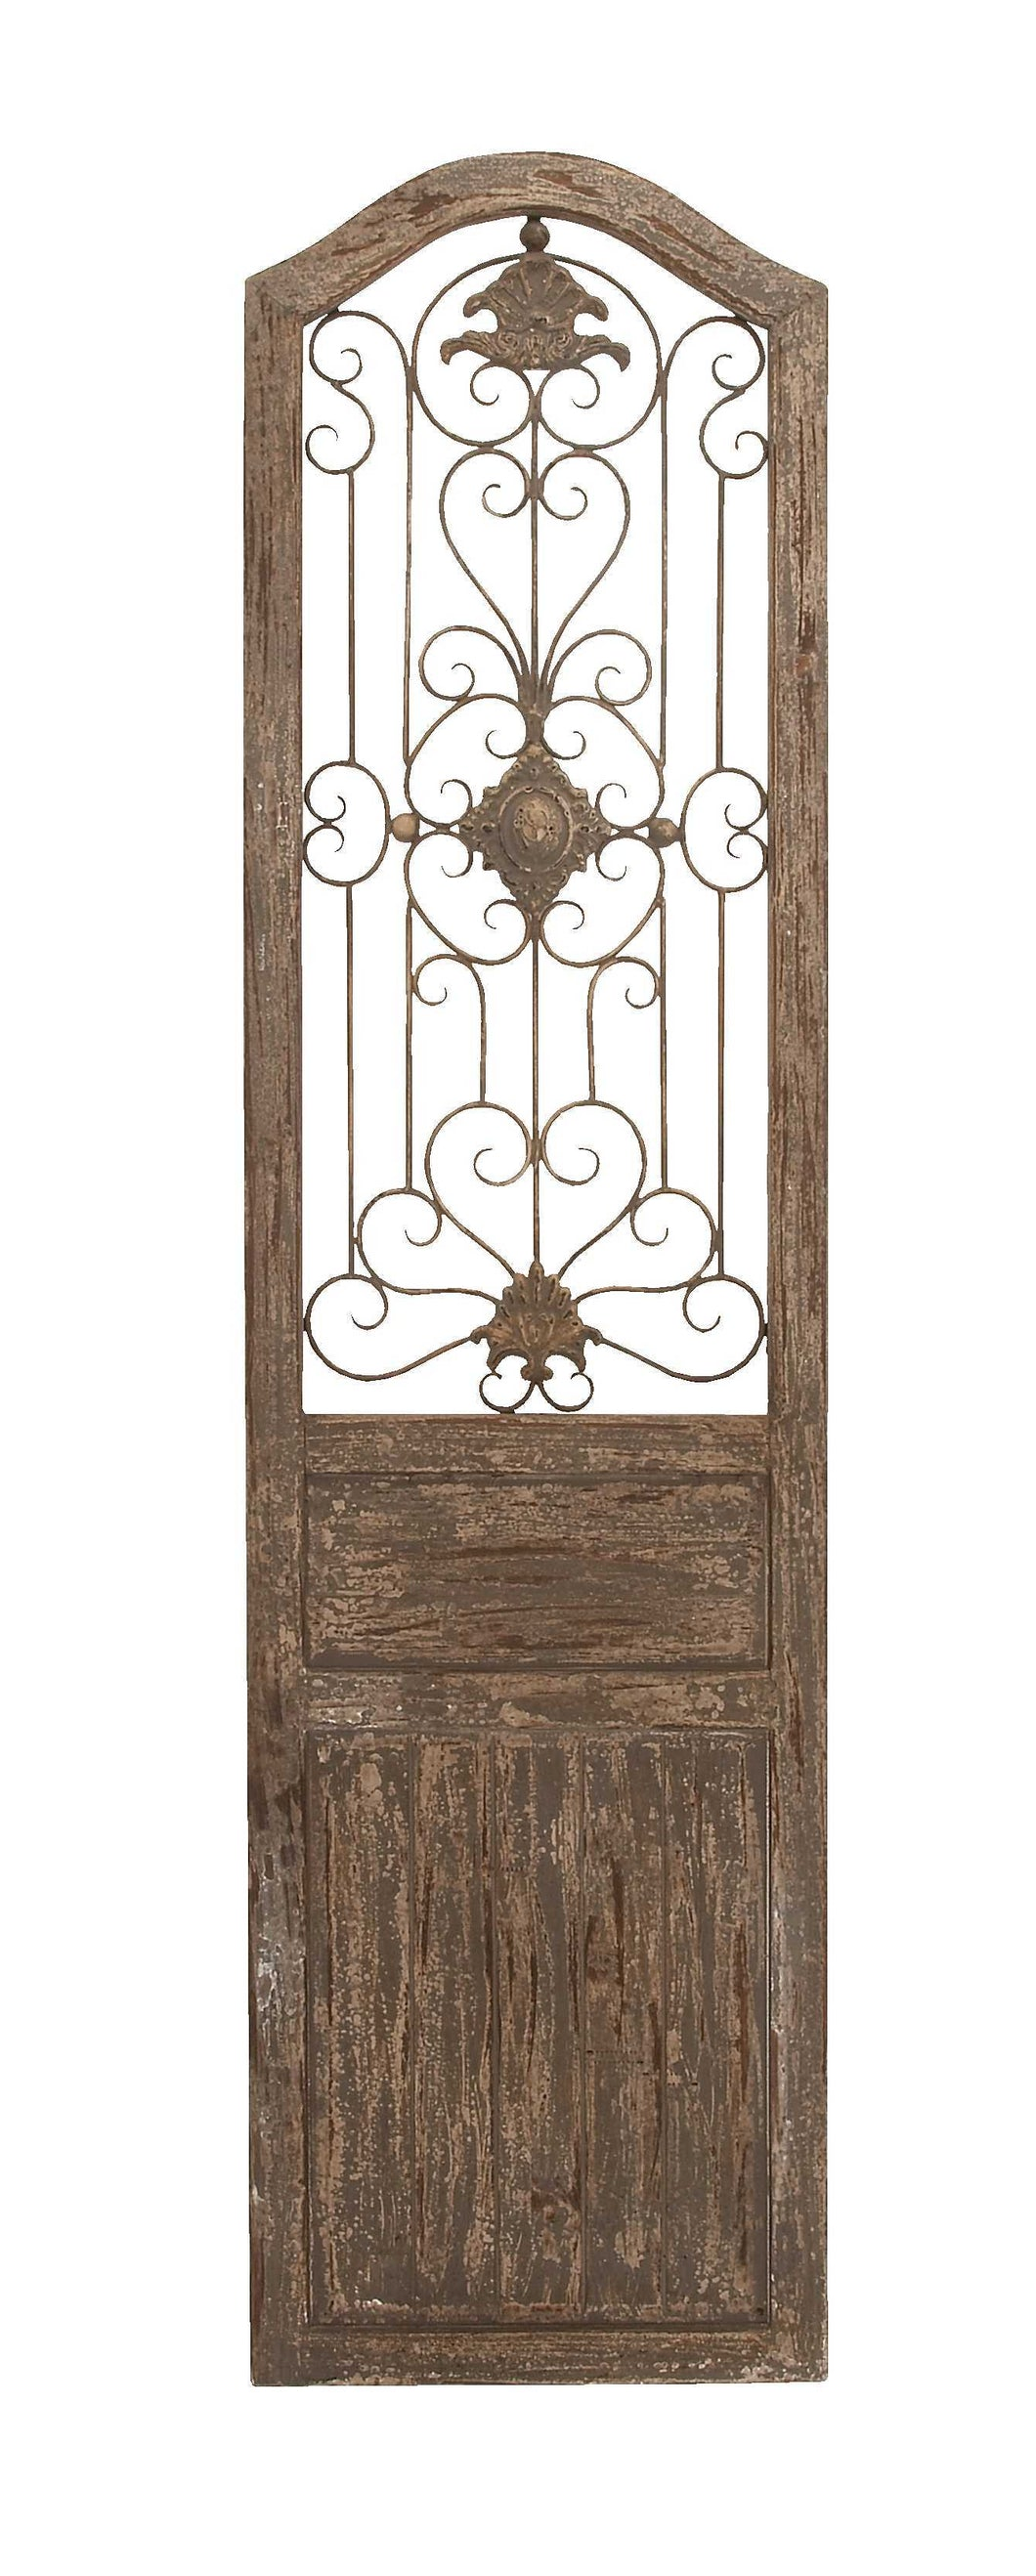 Garden Style Wooden Door With Scrolling Ironwork